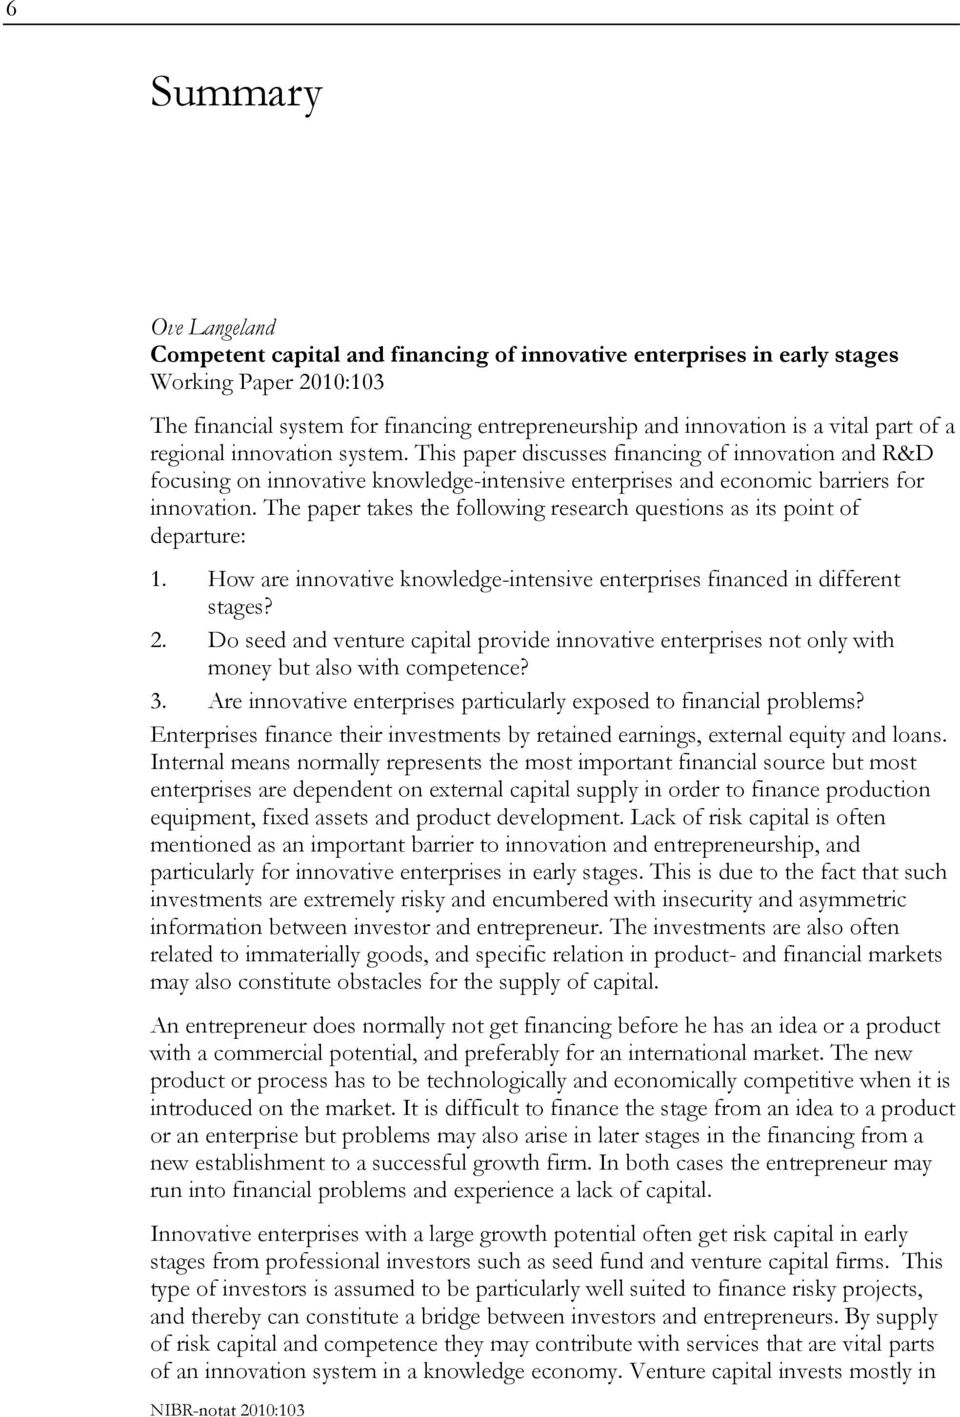 The paper takes the following research questions as its point of departure: 1. How are innovative knowledge-intensive enterprises financed in different stages? 2.